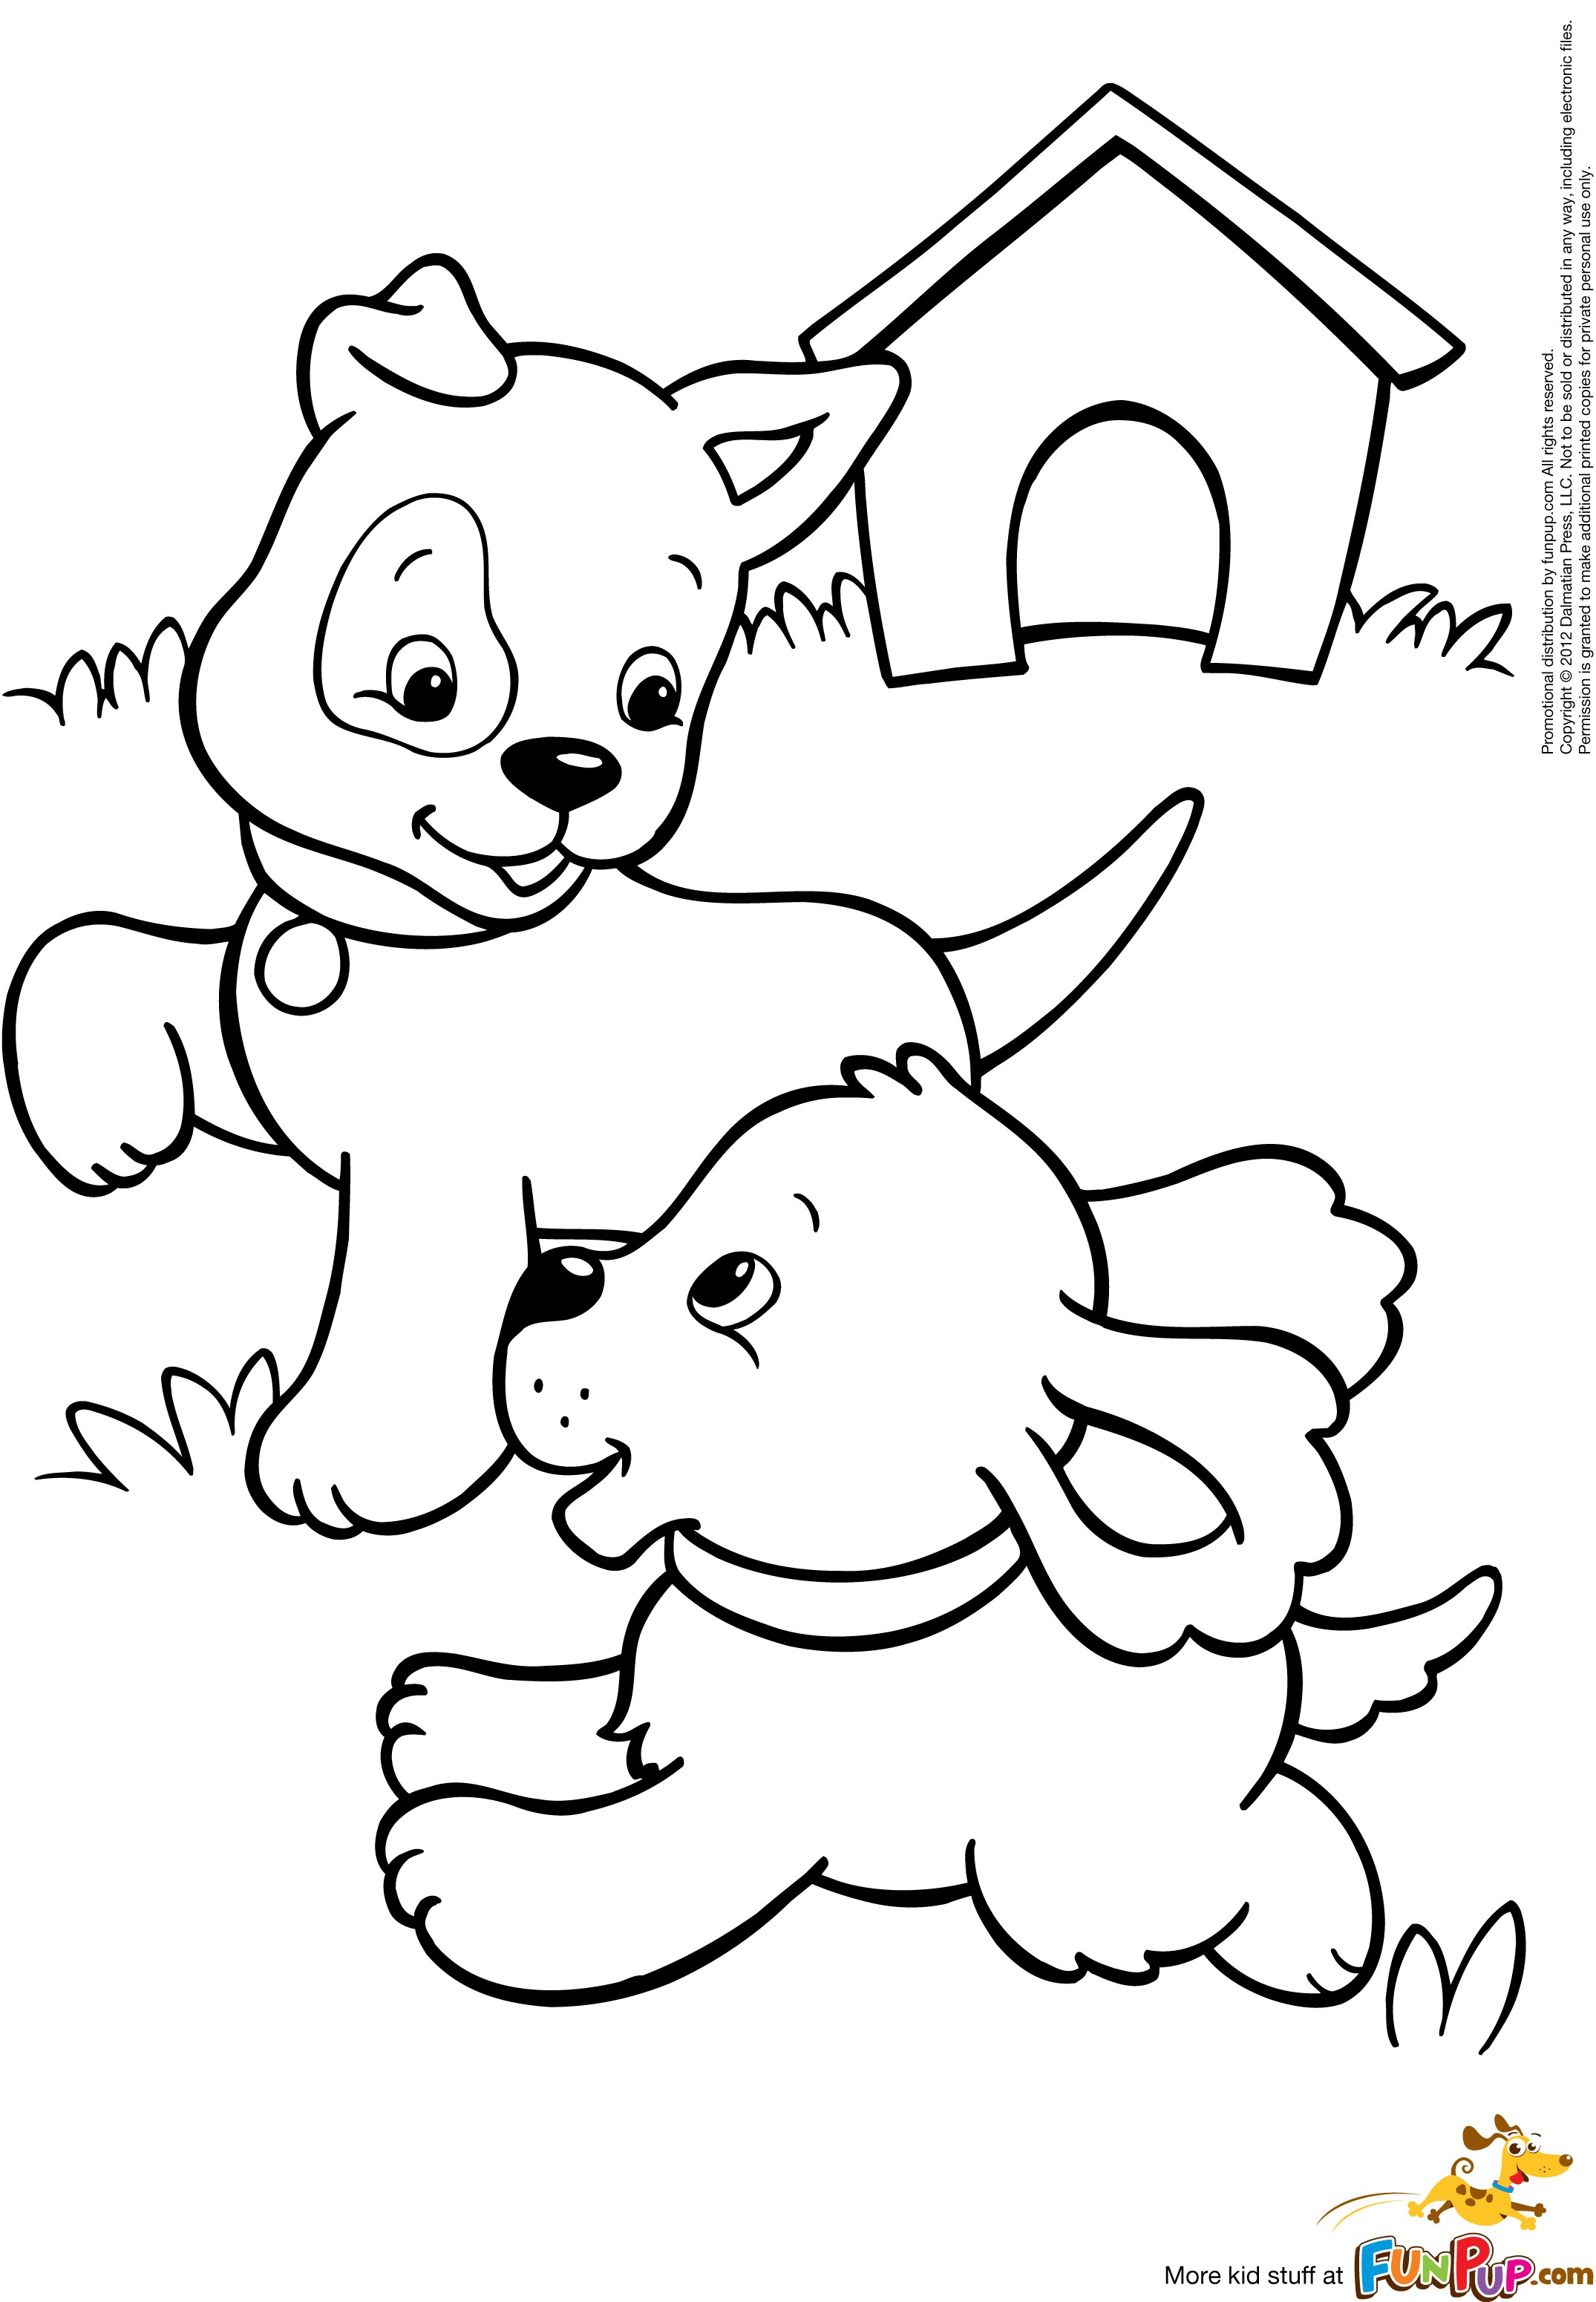 dog coloring in cute puppy cartoon images clipartsco dog in coloring